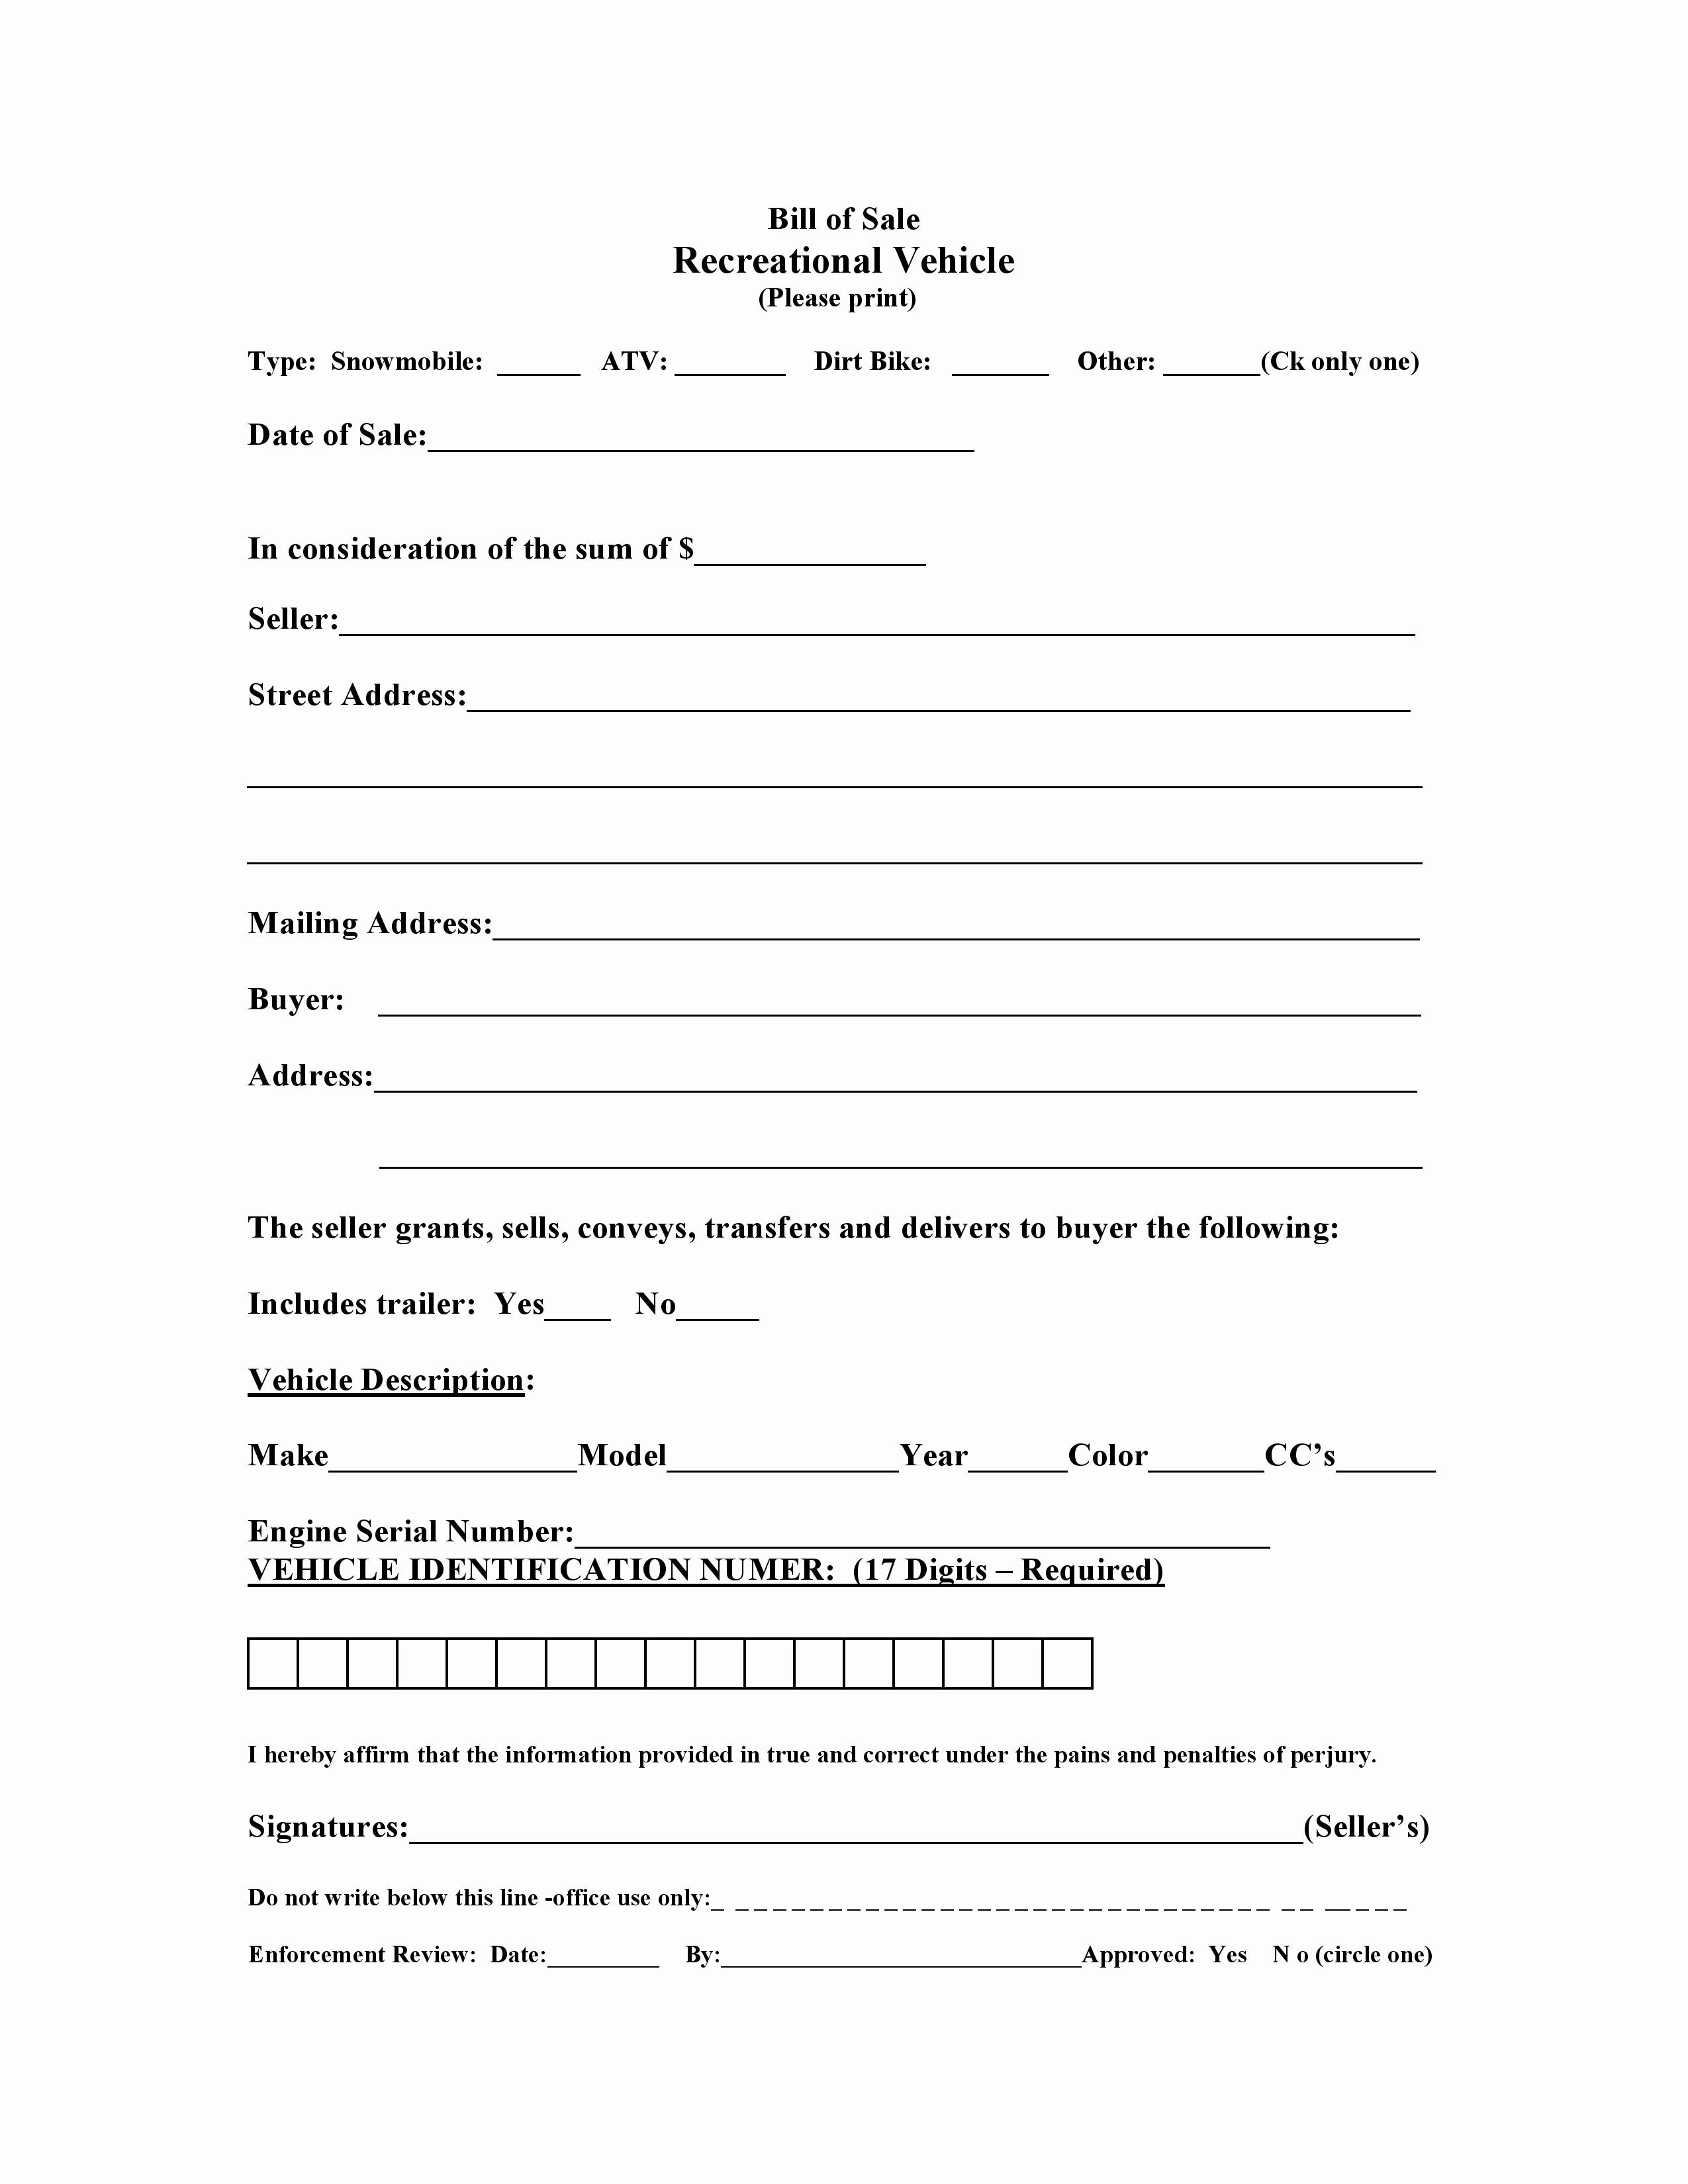 Form for Bill Of Sale Awesome Free Massachusetts Recreational Vessel Vehicle Bill Of